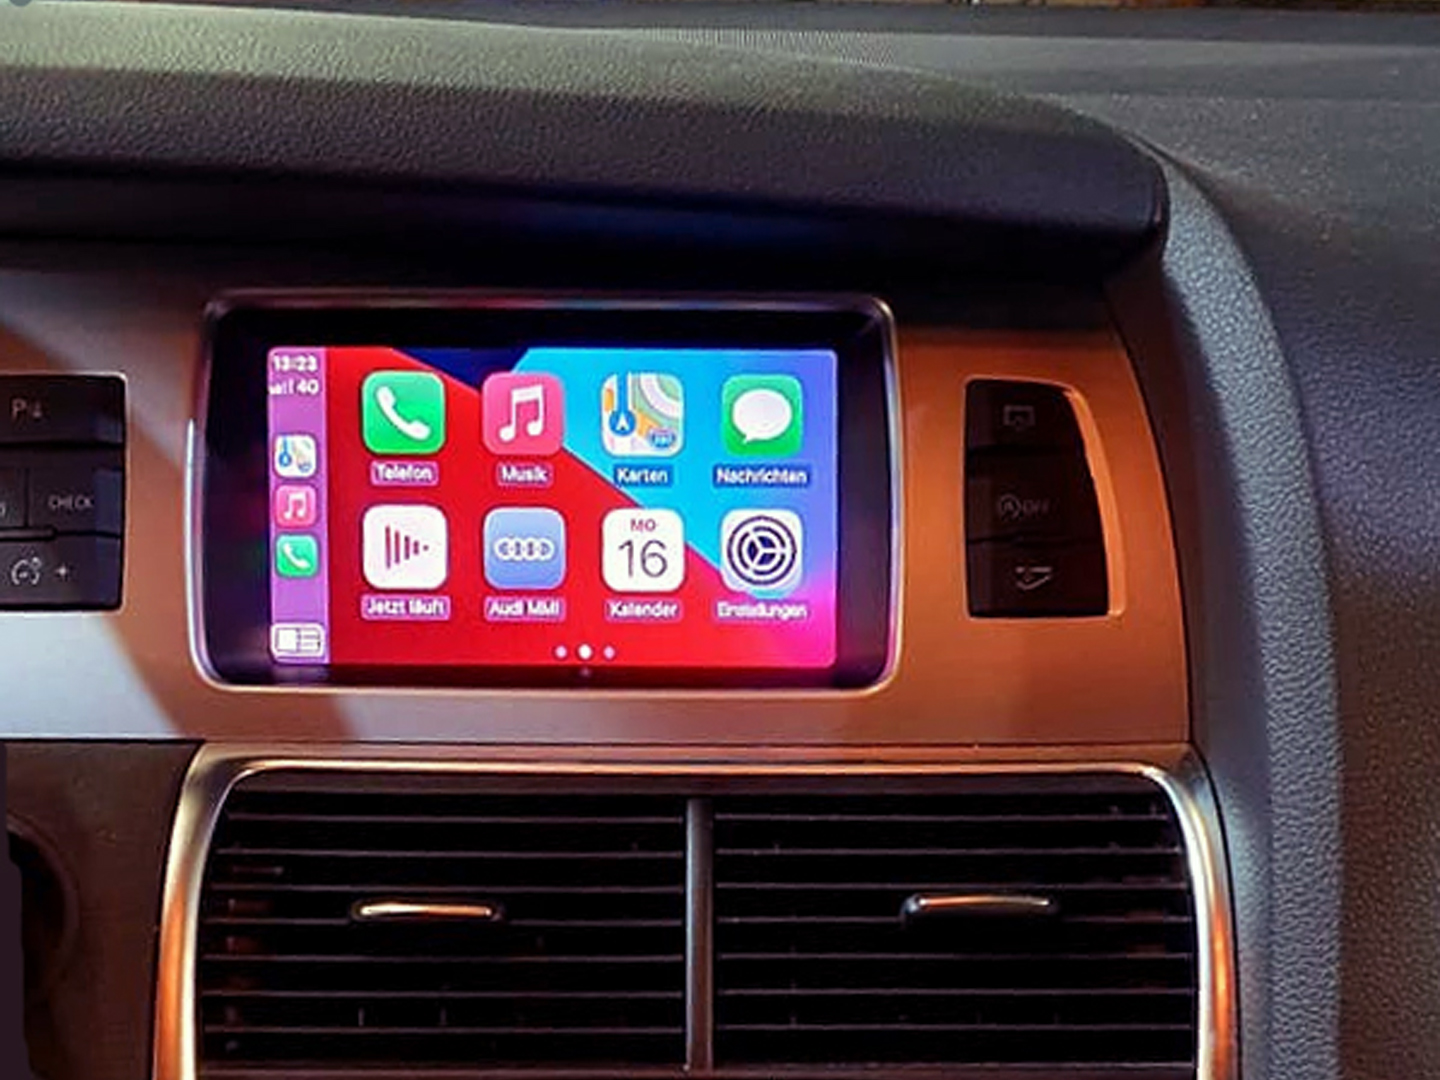 Carplay im Audi Q7 mit MMI3G